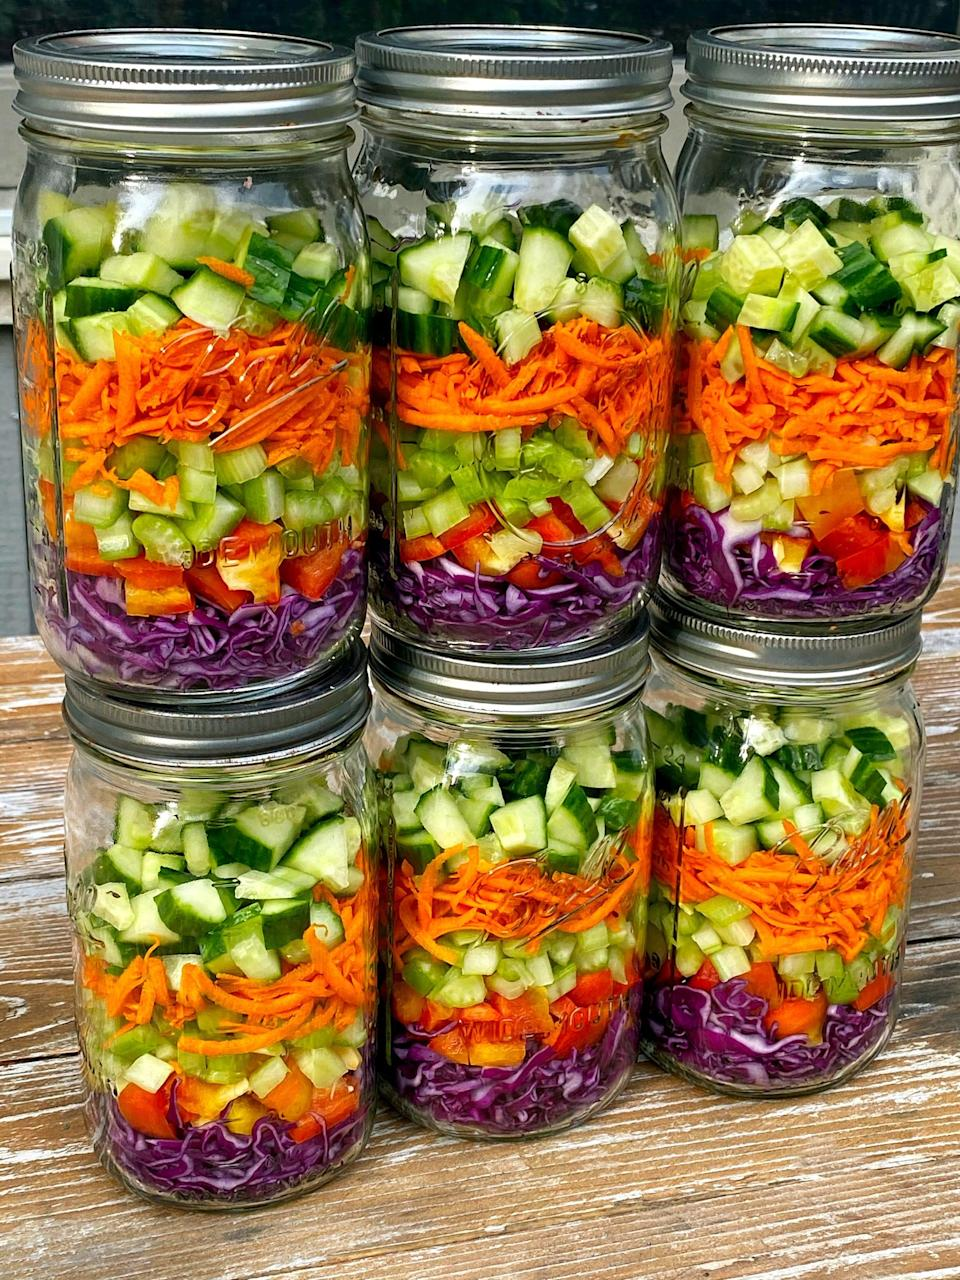 <p>If you want to pack salads that will last more than five days, make sure your veggies are as dry as possible when you add them to the jar, and layer them so that the wettest veggies (like cucumbers) are on top. This is key to keeping them crisp!</p> <p>For absolute freshness that lasts on days five through seven, don't add the dressing or other wet ingredients like beans, fruit, tomatoes, roasted veggies, or whole grains - add those to your salad bowl on the day you eat it. And keep your greens separate - more on that in the next slide!</p>